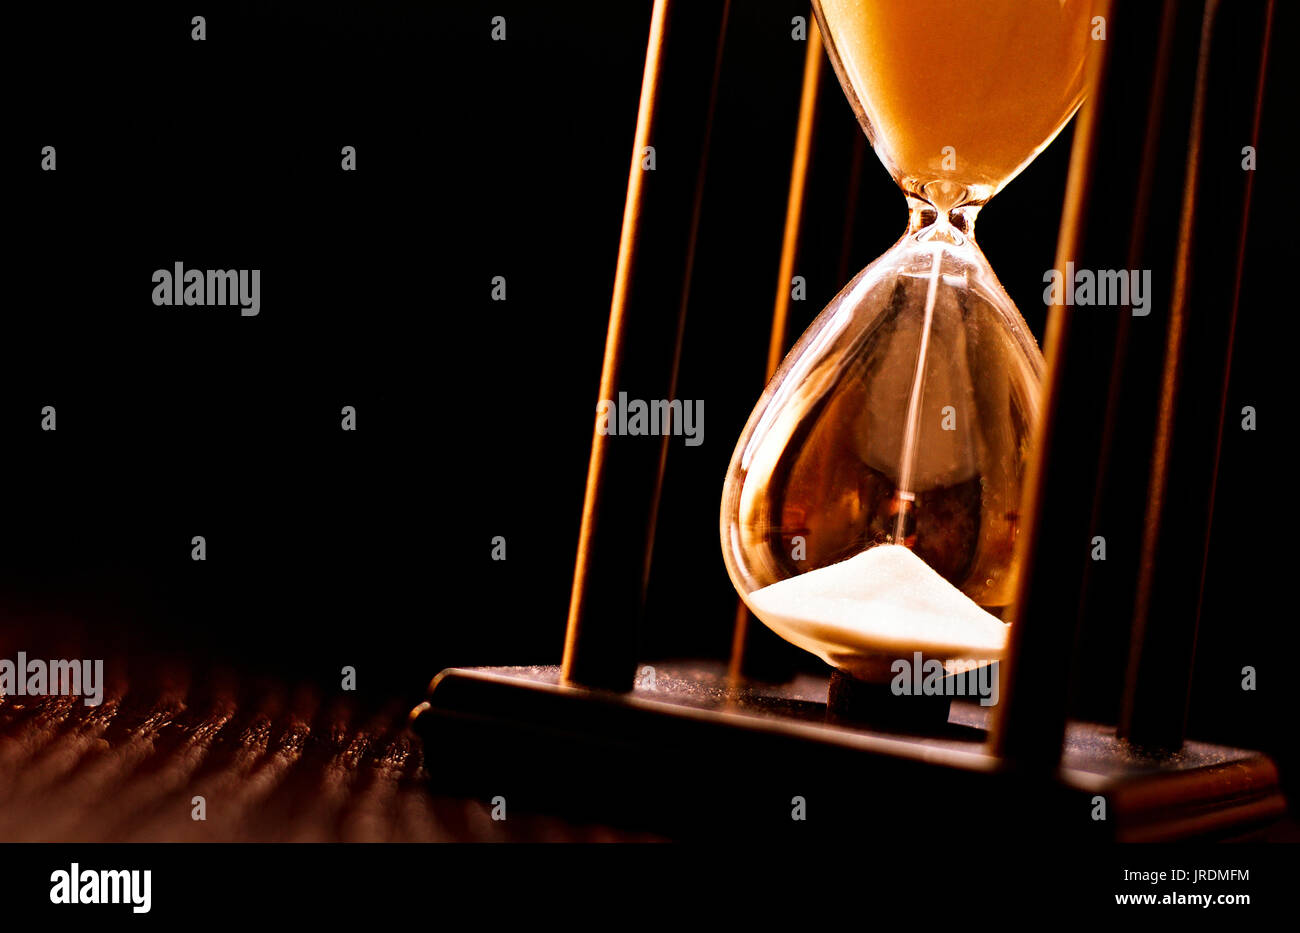 Newly turned hourglass with running sand measuring the passing time to a deadline or expiry of a fixed time period, close up on a dark background - Stock Image